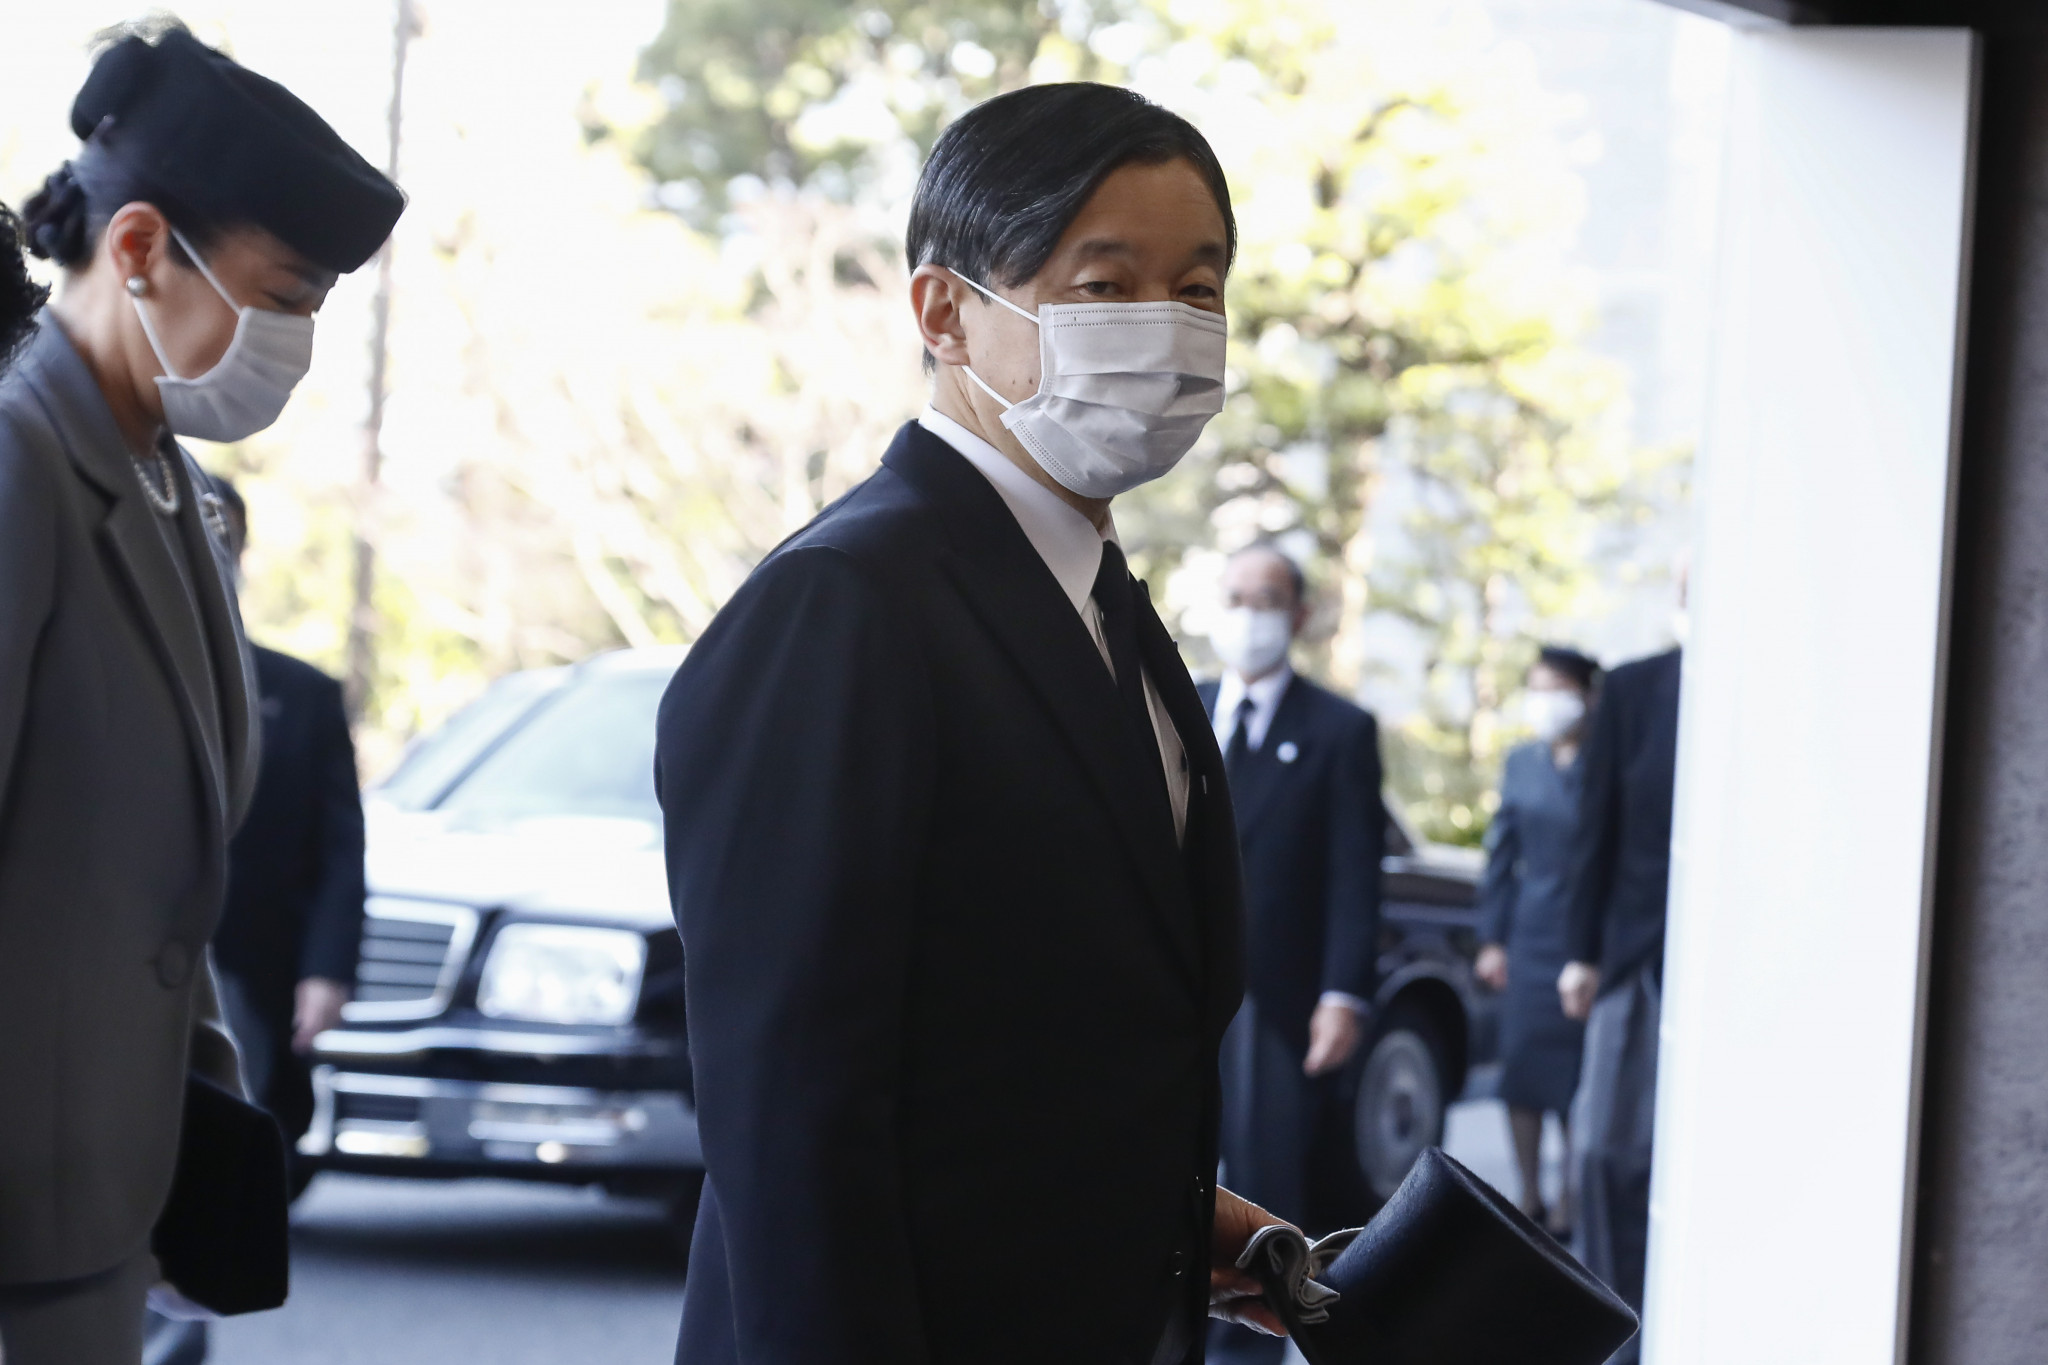 Emperor Naruhito expresses Tokyo 2020 concerns as COVID-19 vaccine rollout gathers pace